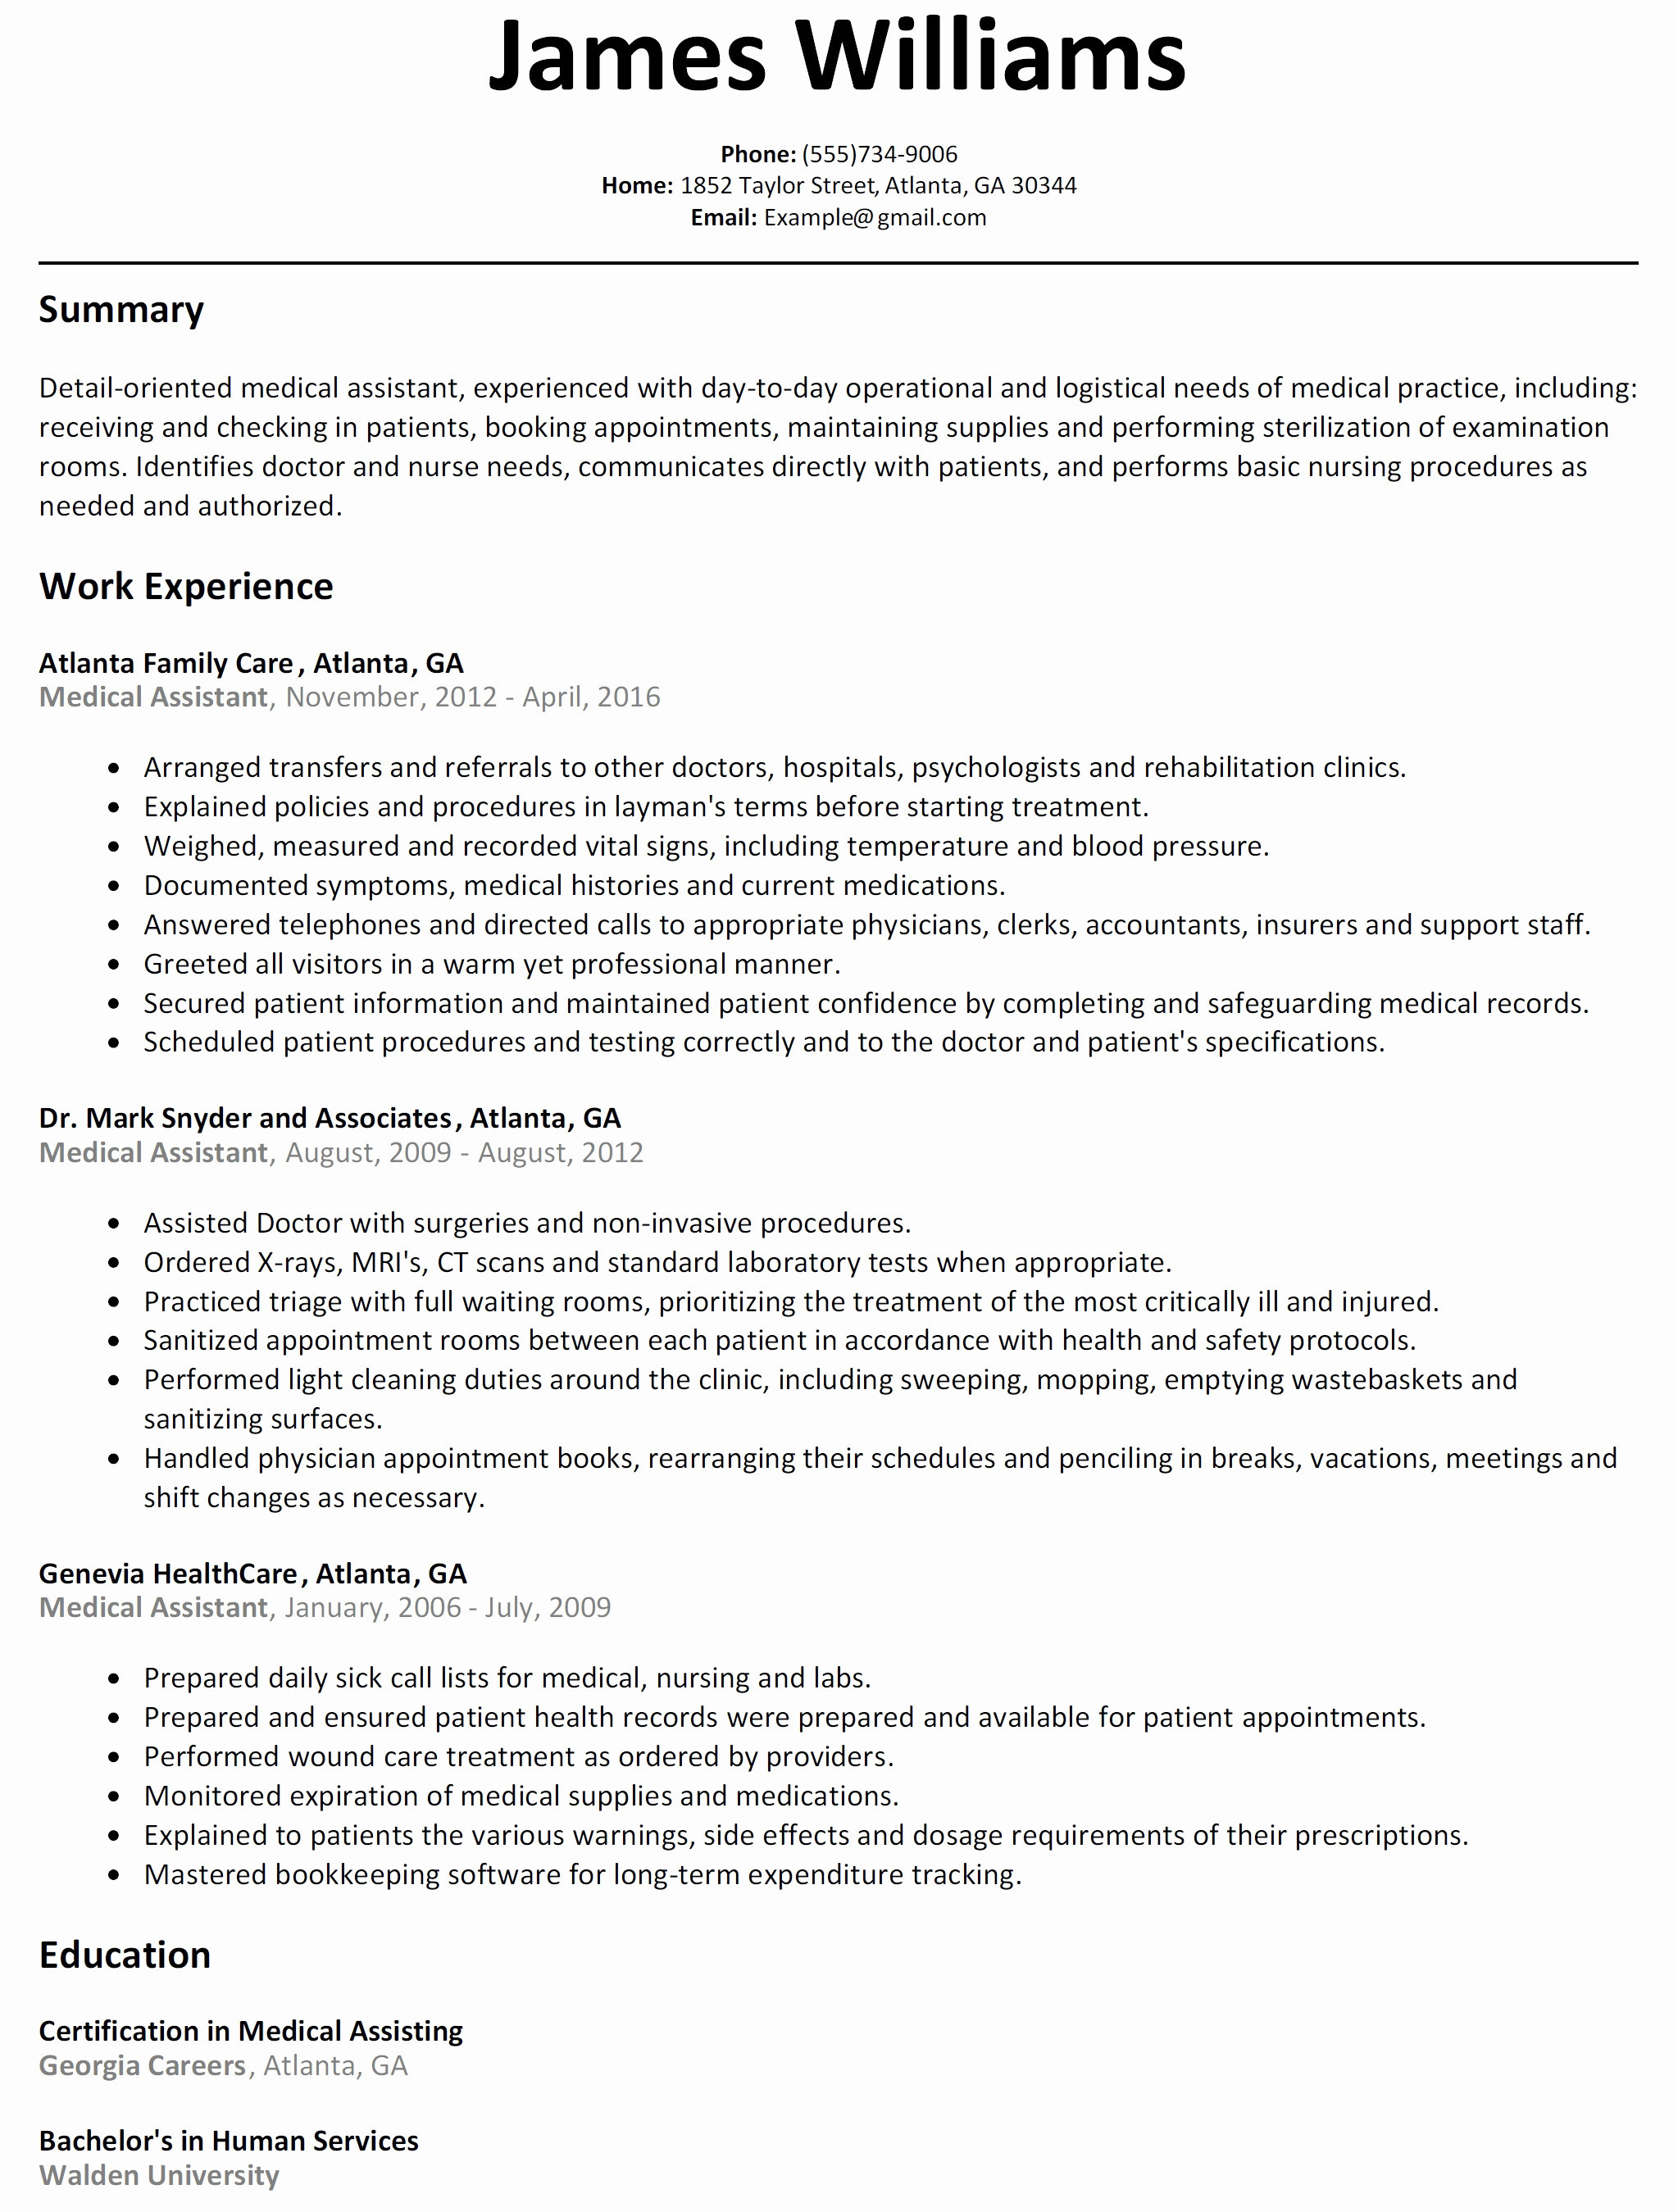 Pre Med Resume Template - Maintenance Supervisor Resume Template Fresh Maintenance Supervisor